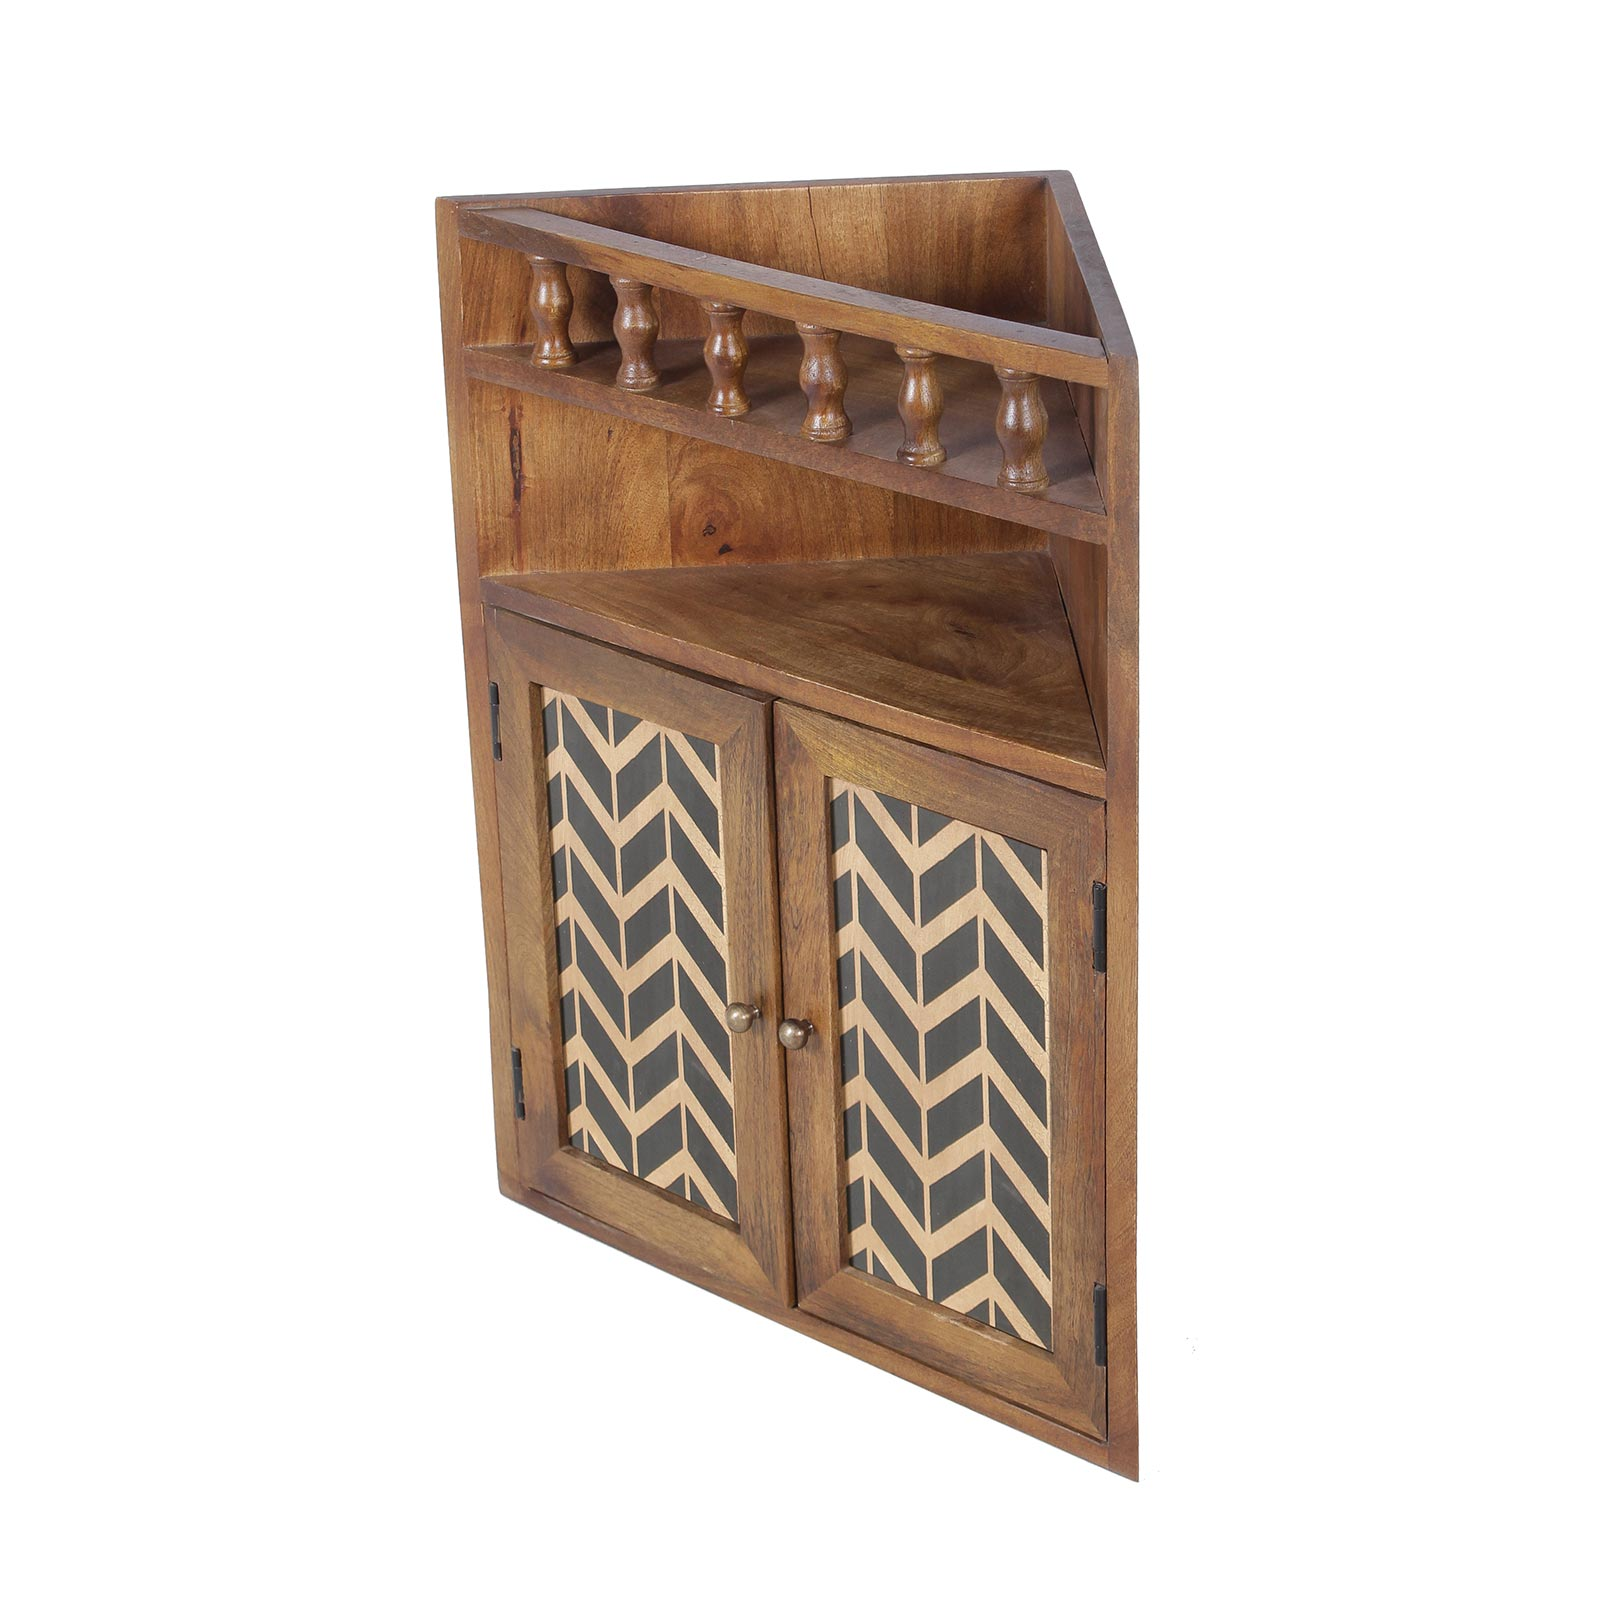 Vanora Solid Wood Bathroom Wall Shelf